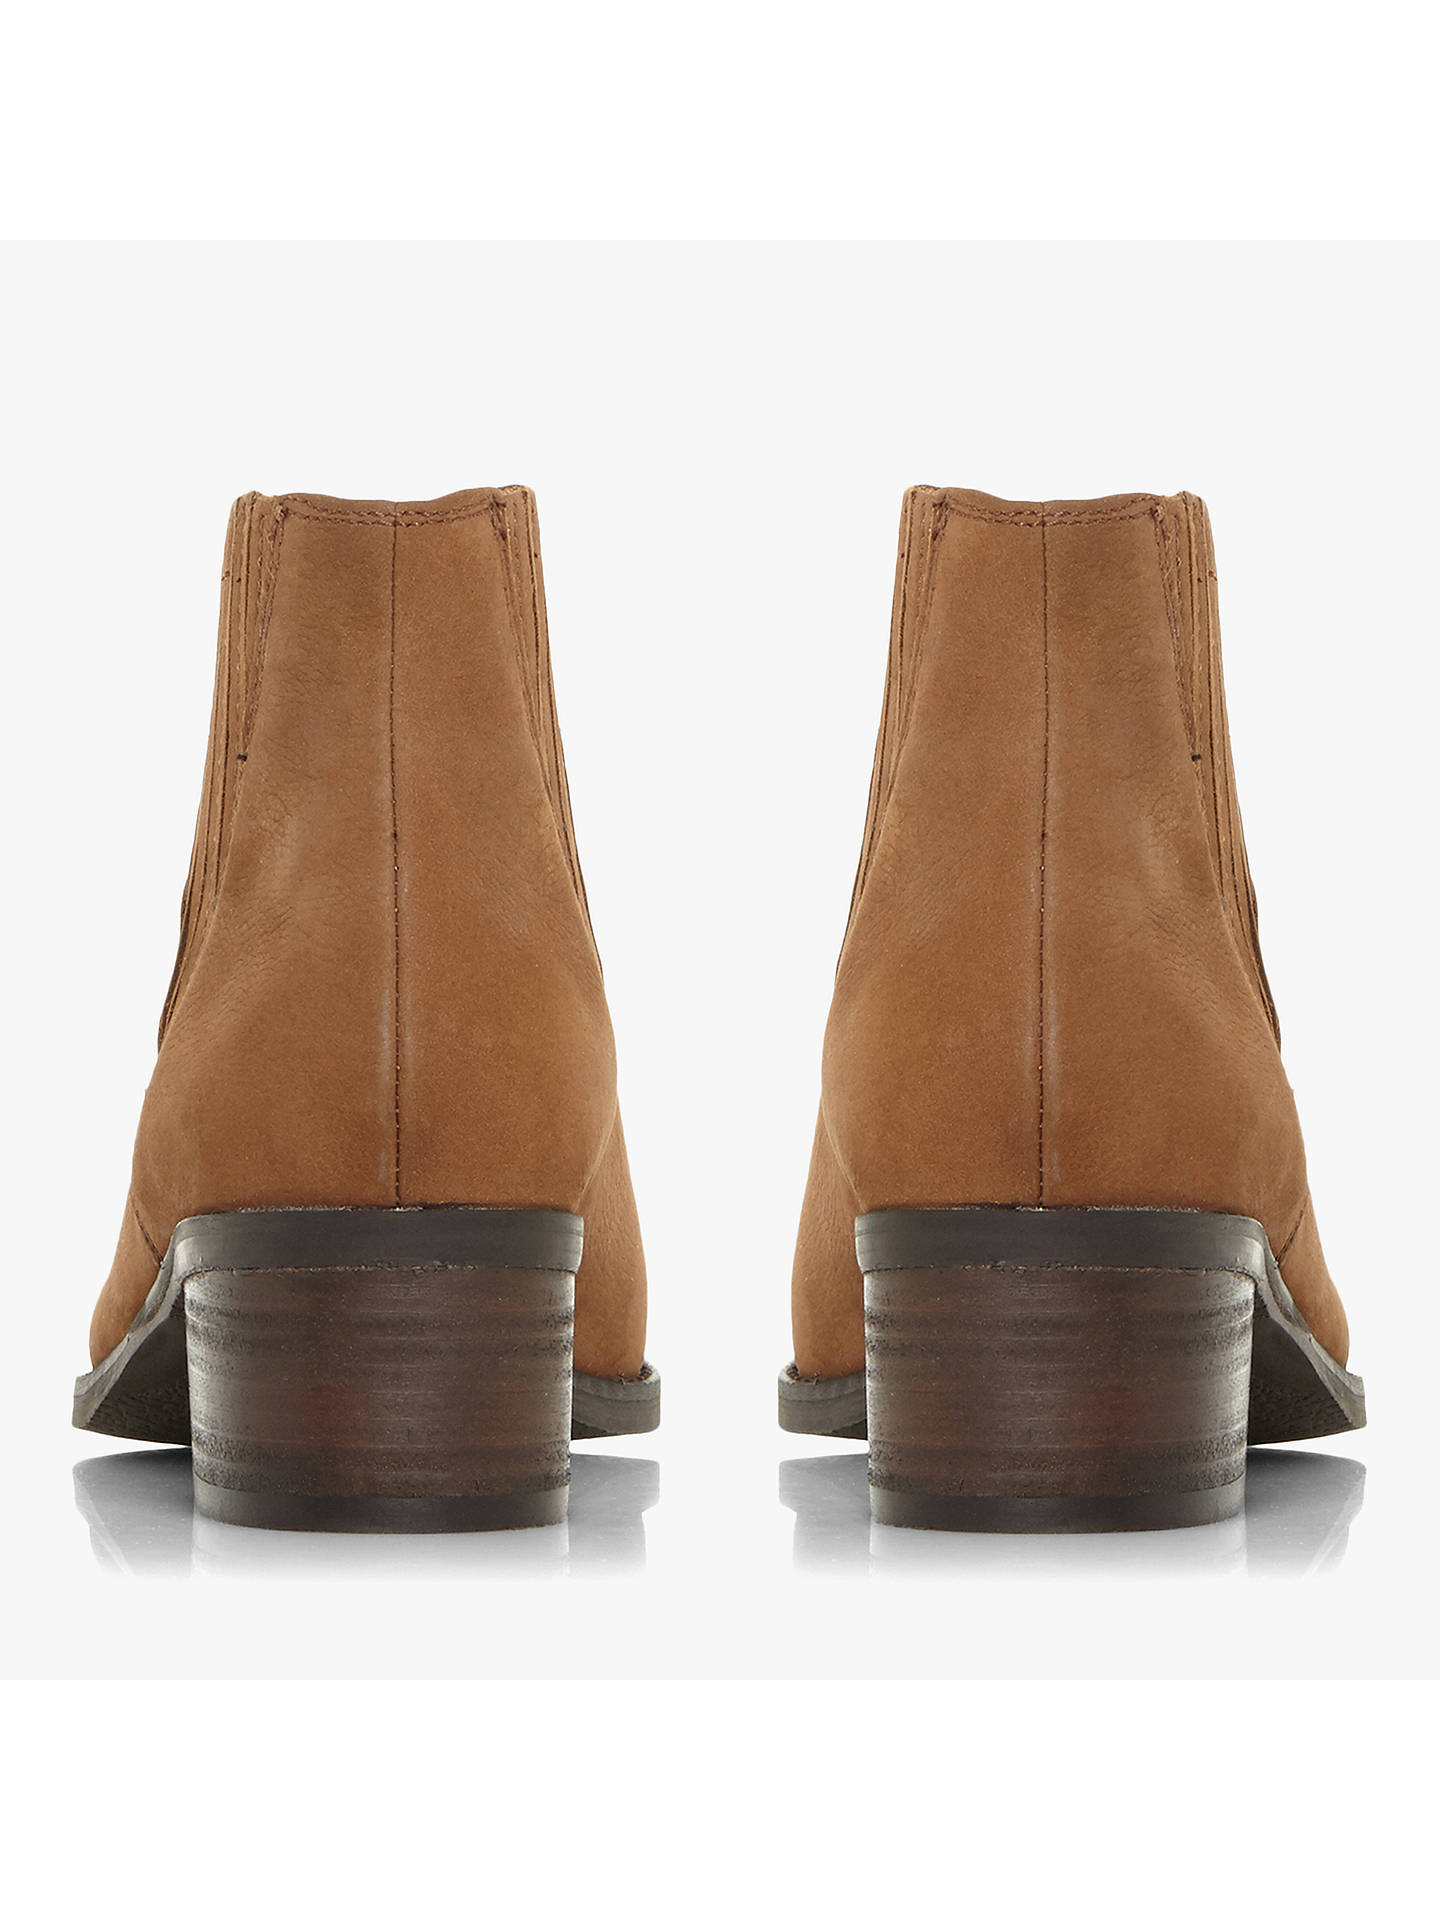 Buy Steve Madden Always Stacked Heel Ankle Boots, Camel, 5 Online at johnlewis.com